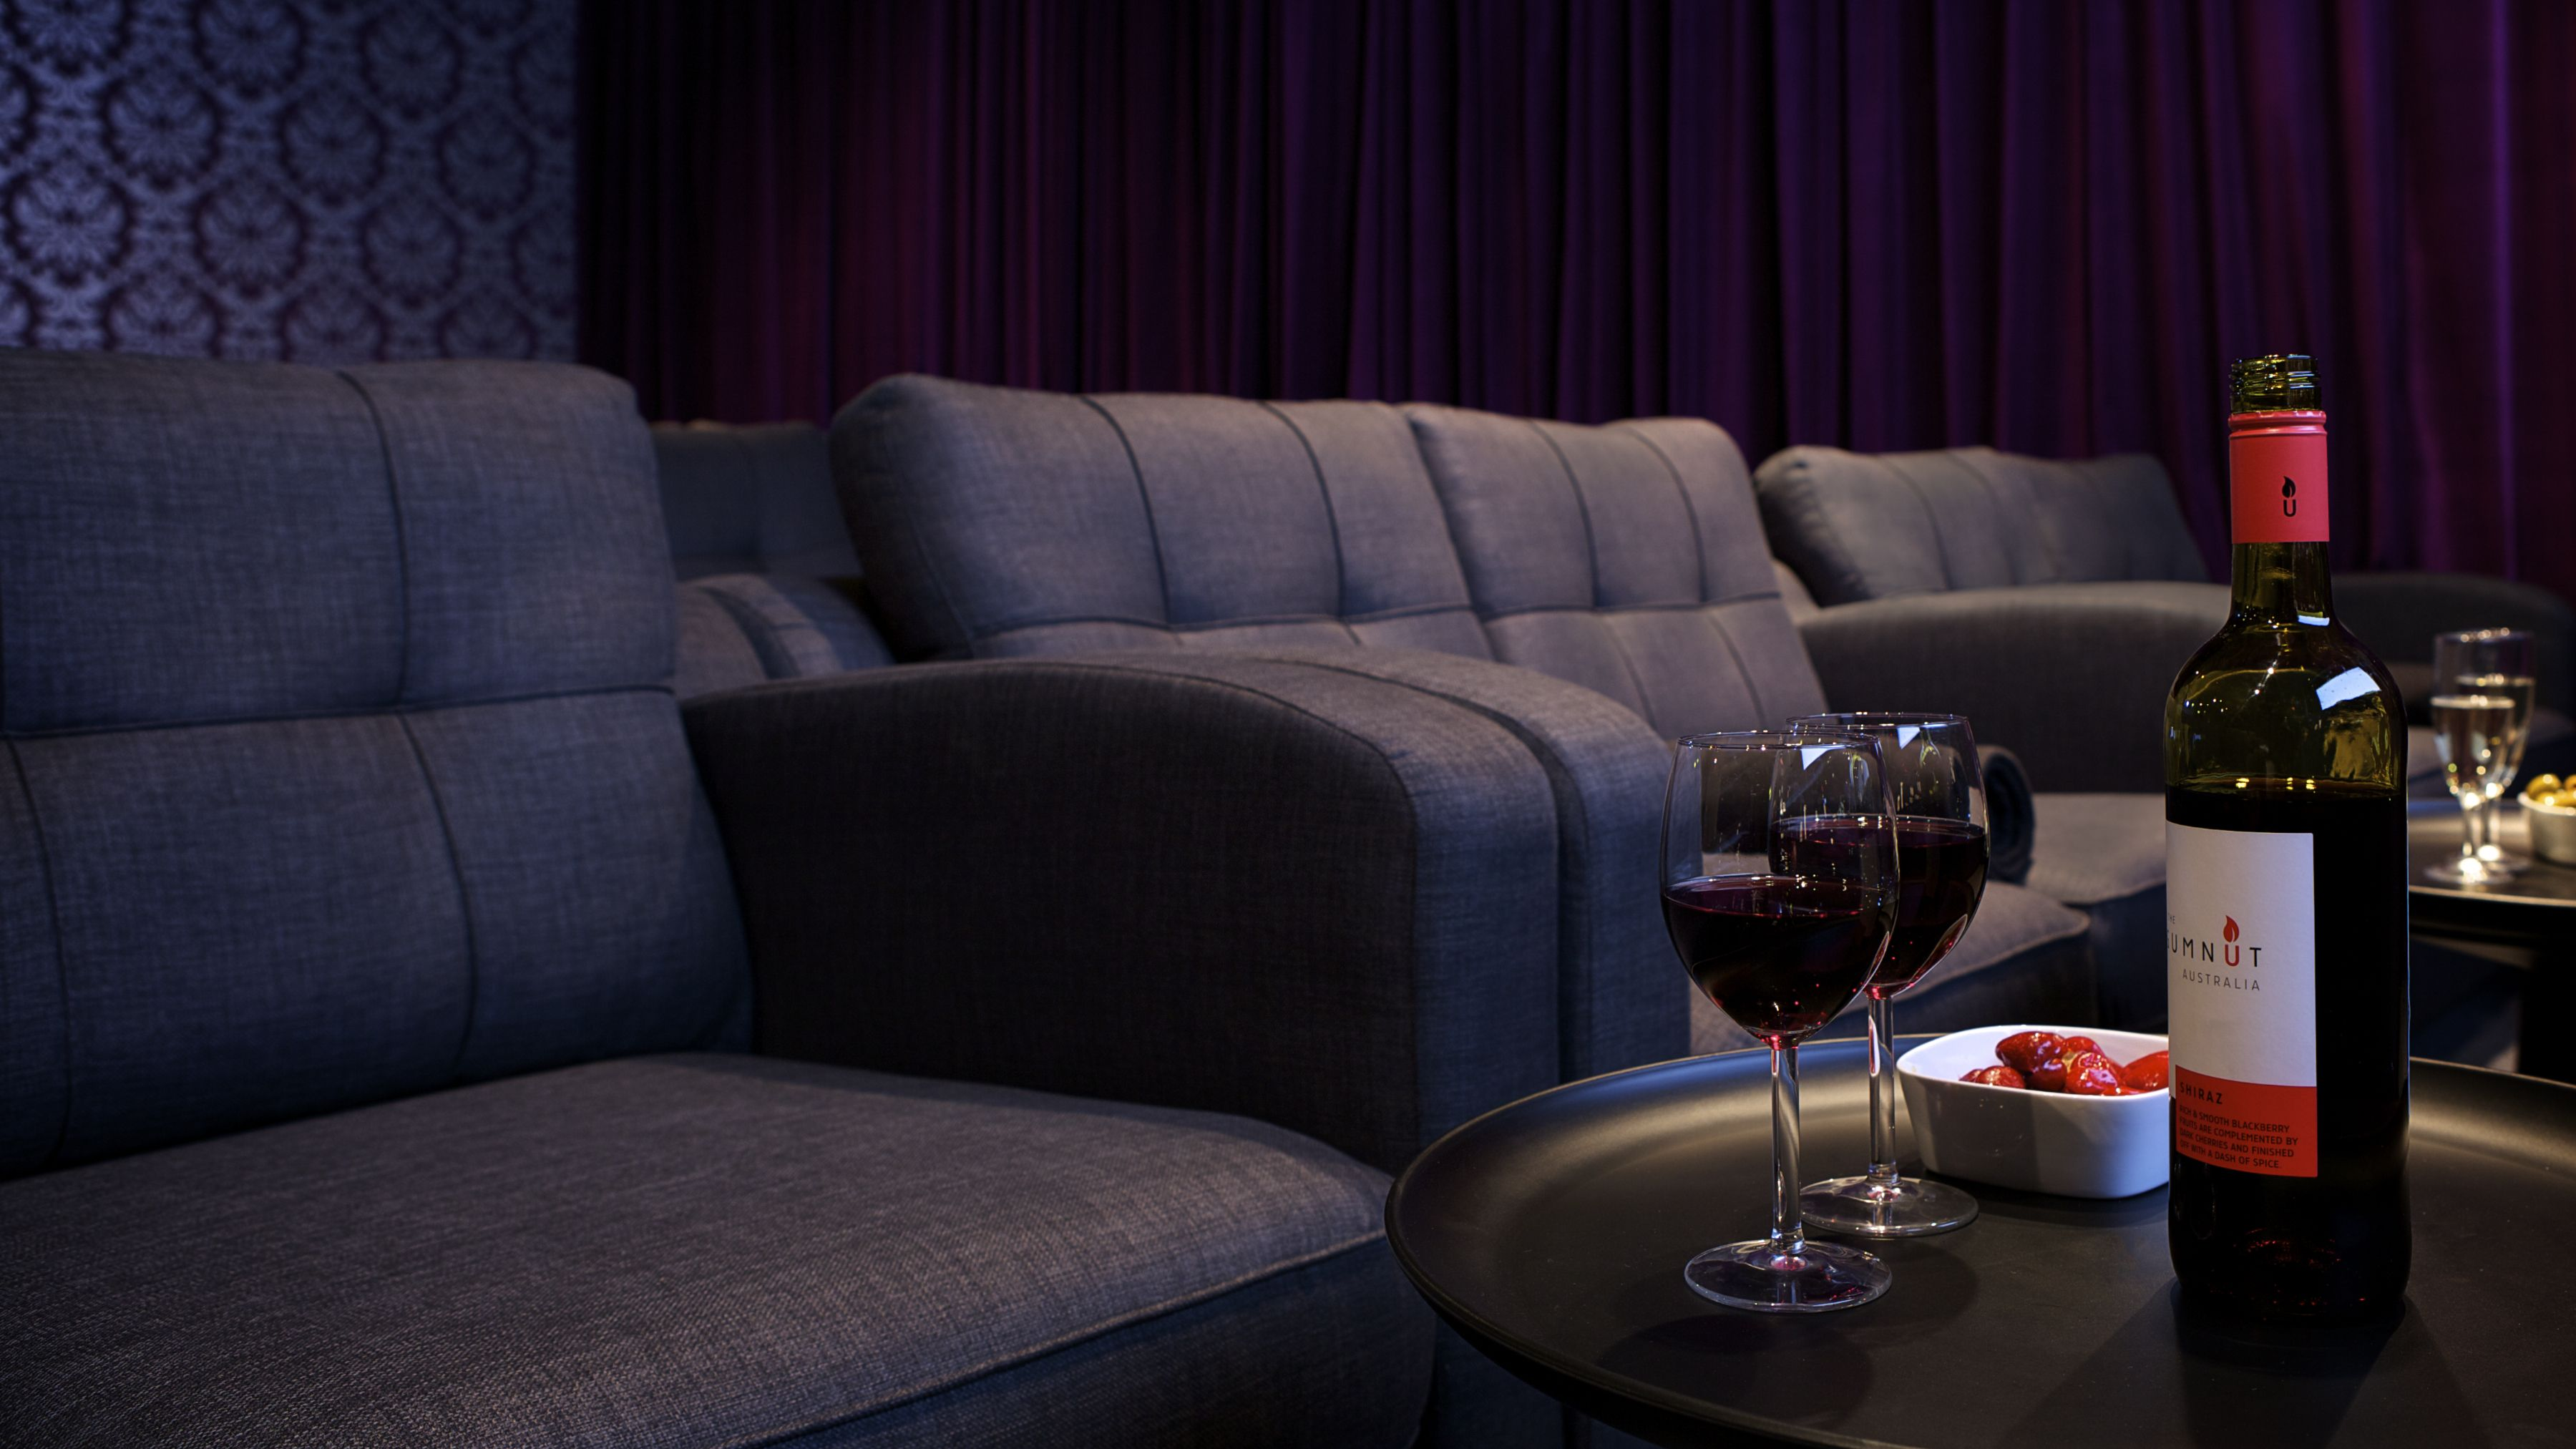 Genesis Cinema: Cinema with couches and drinks in the Studio 5 ...